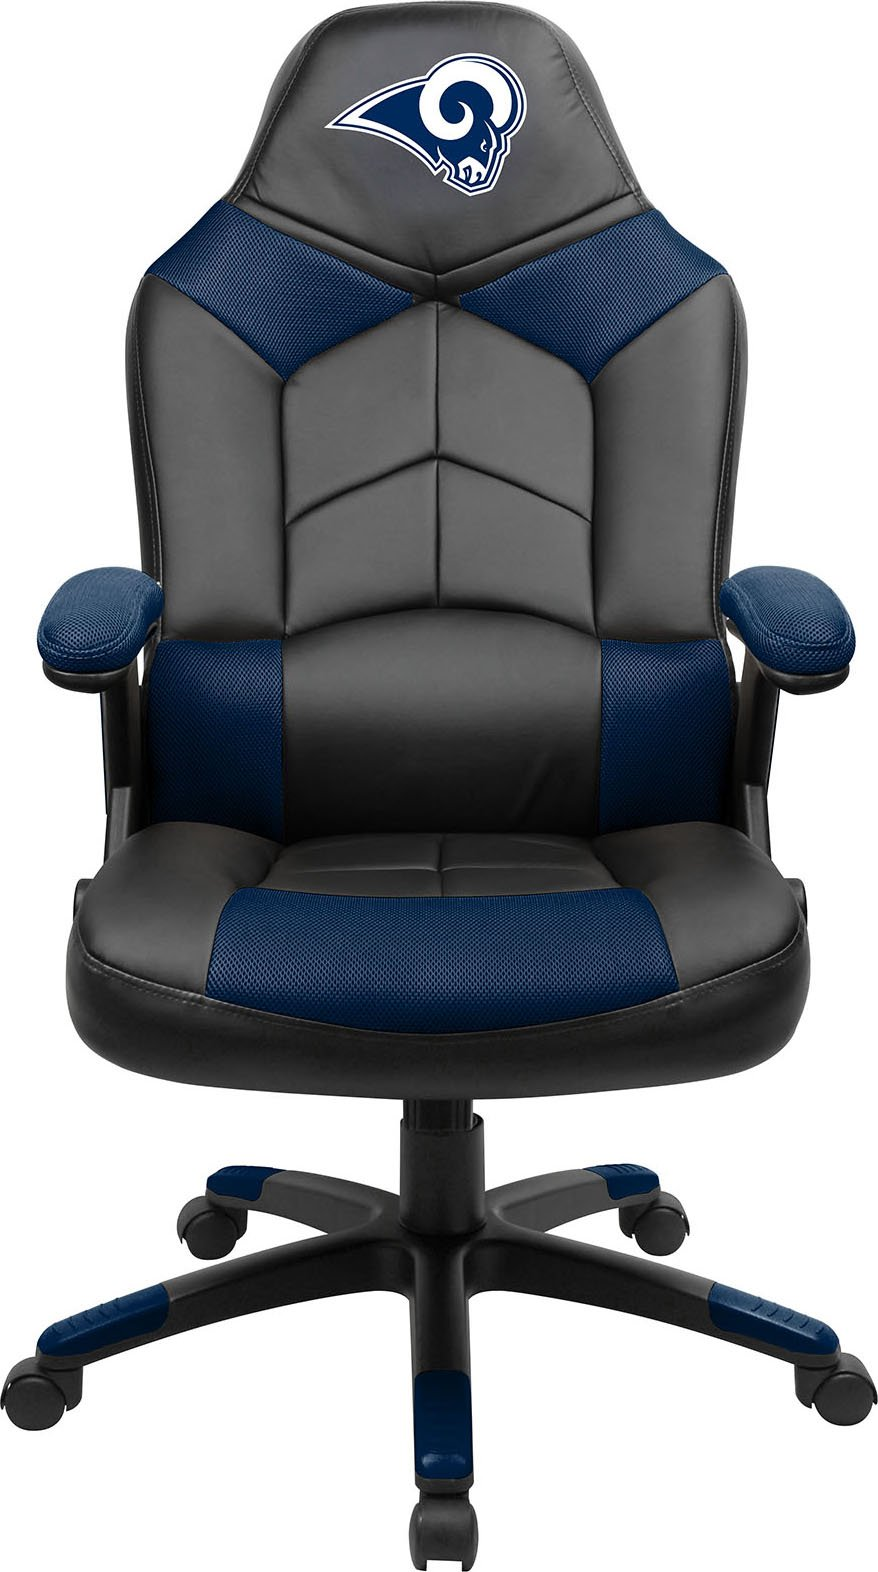 Imperial Officially Licensed NFL Furniture; Oversized Gaming Chairs, Los Angels Rams